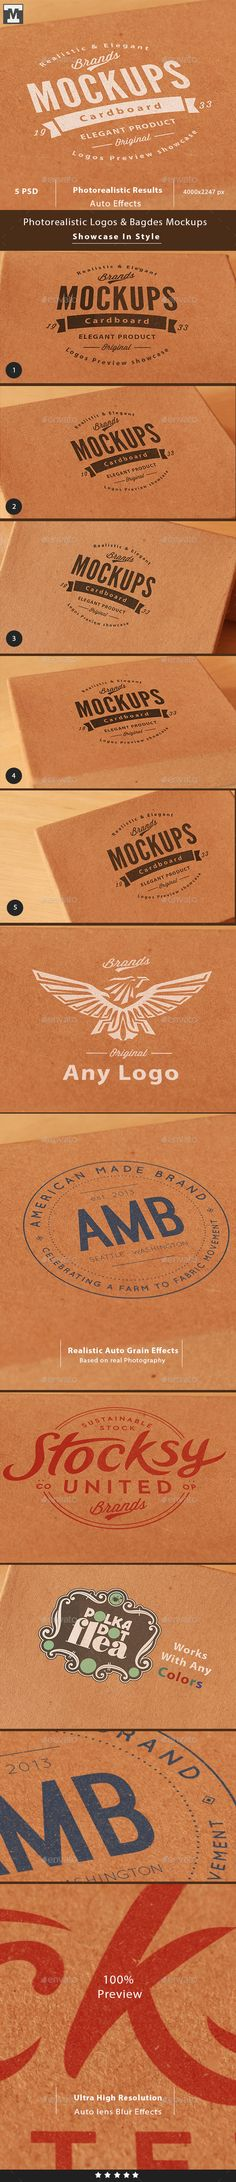 Photo-realistic Cardboard Logo Mockups. Download here: graphicriver.net/...